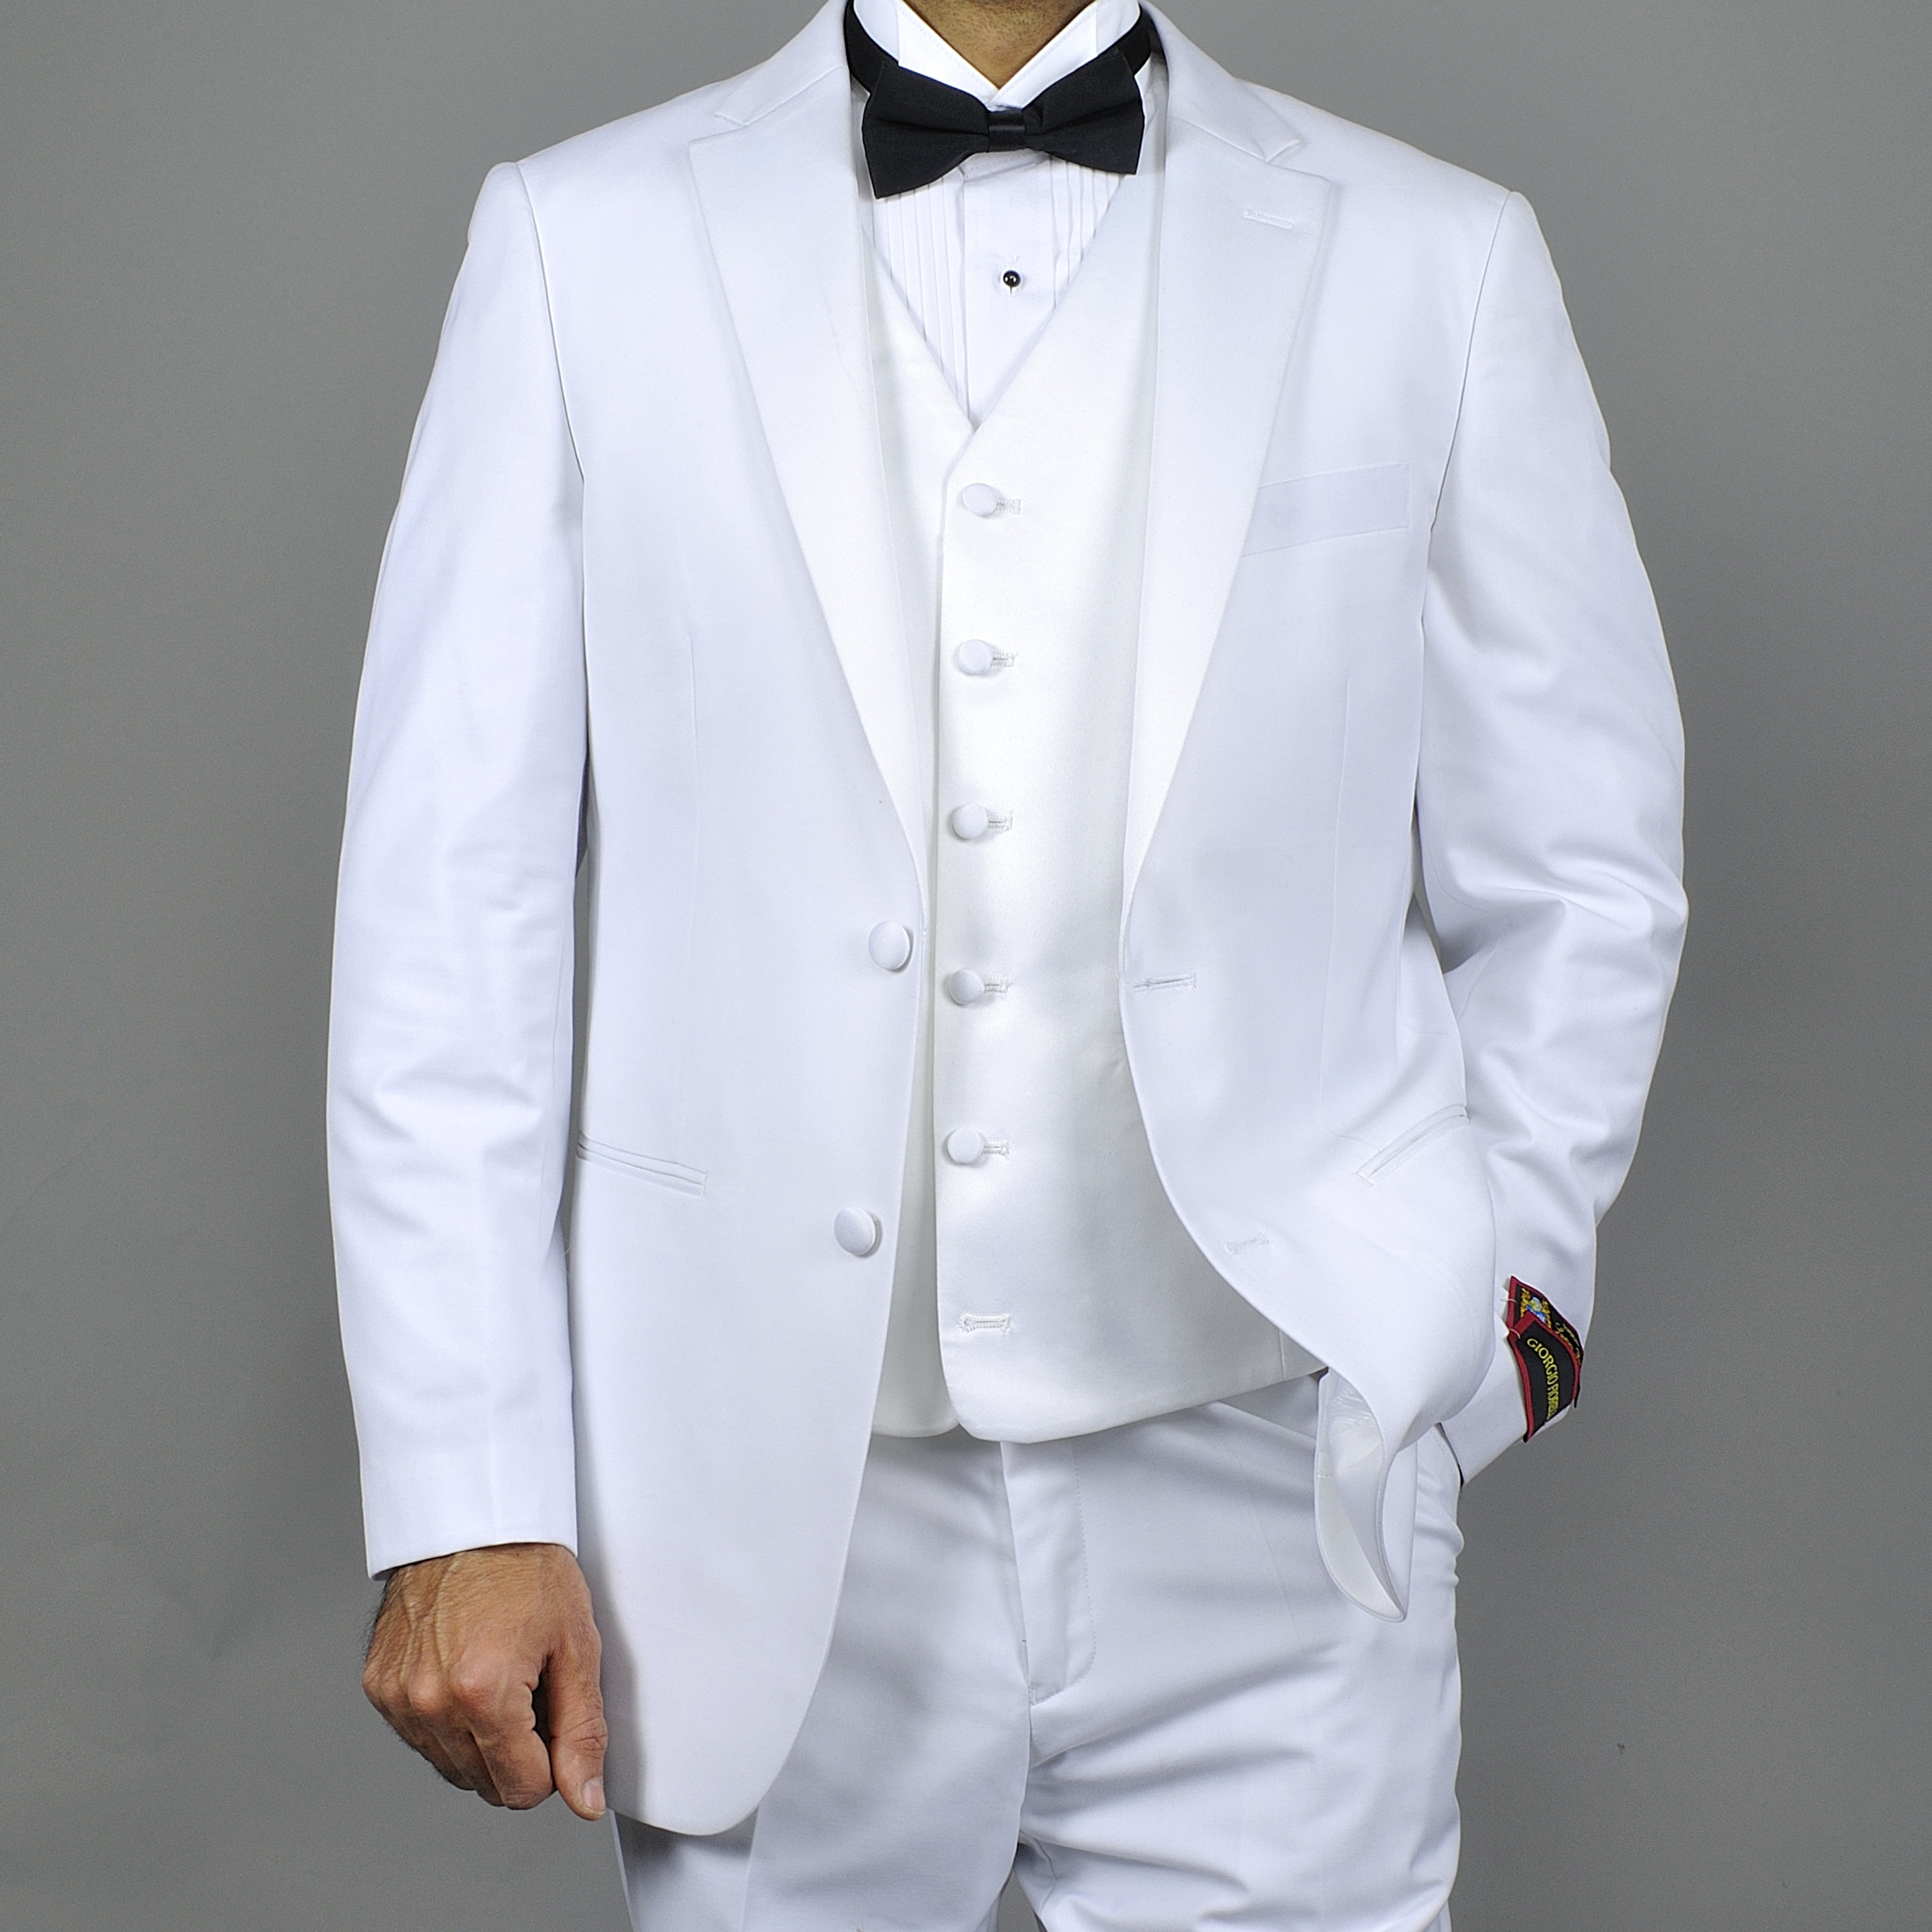 Viscose Custom-fit Two-button Vested White Tuxedo - Thumbnail 0